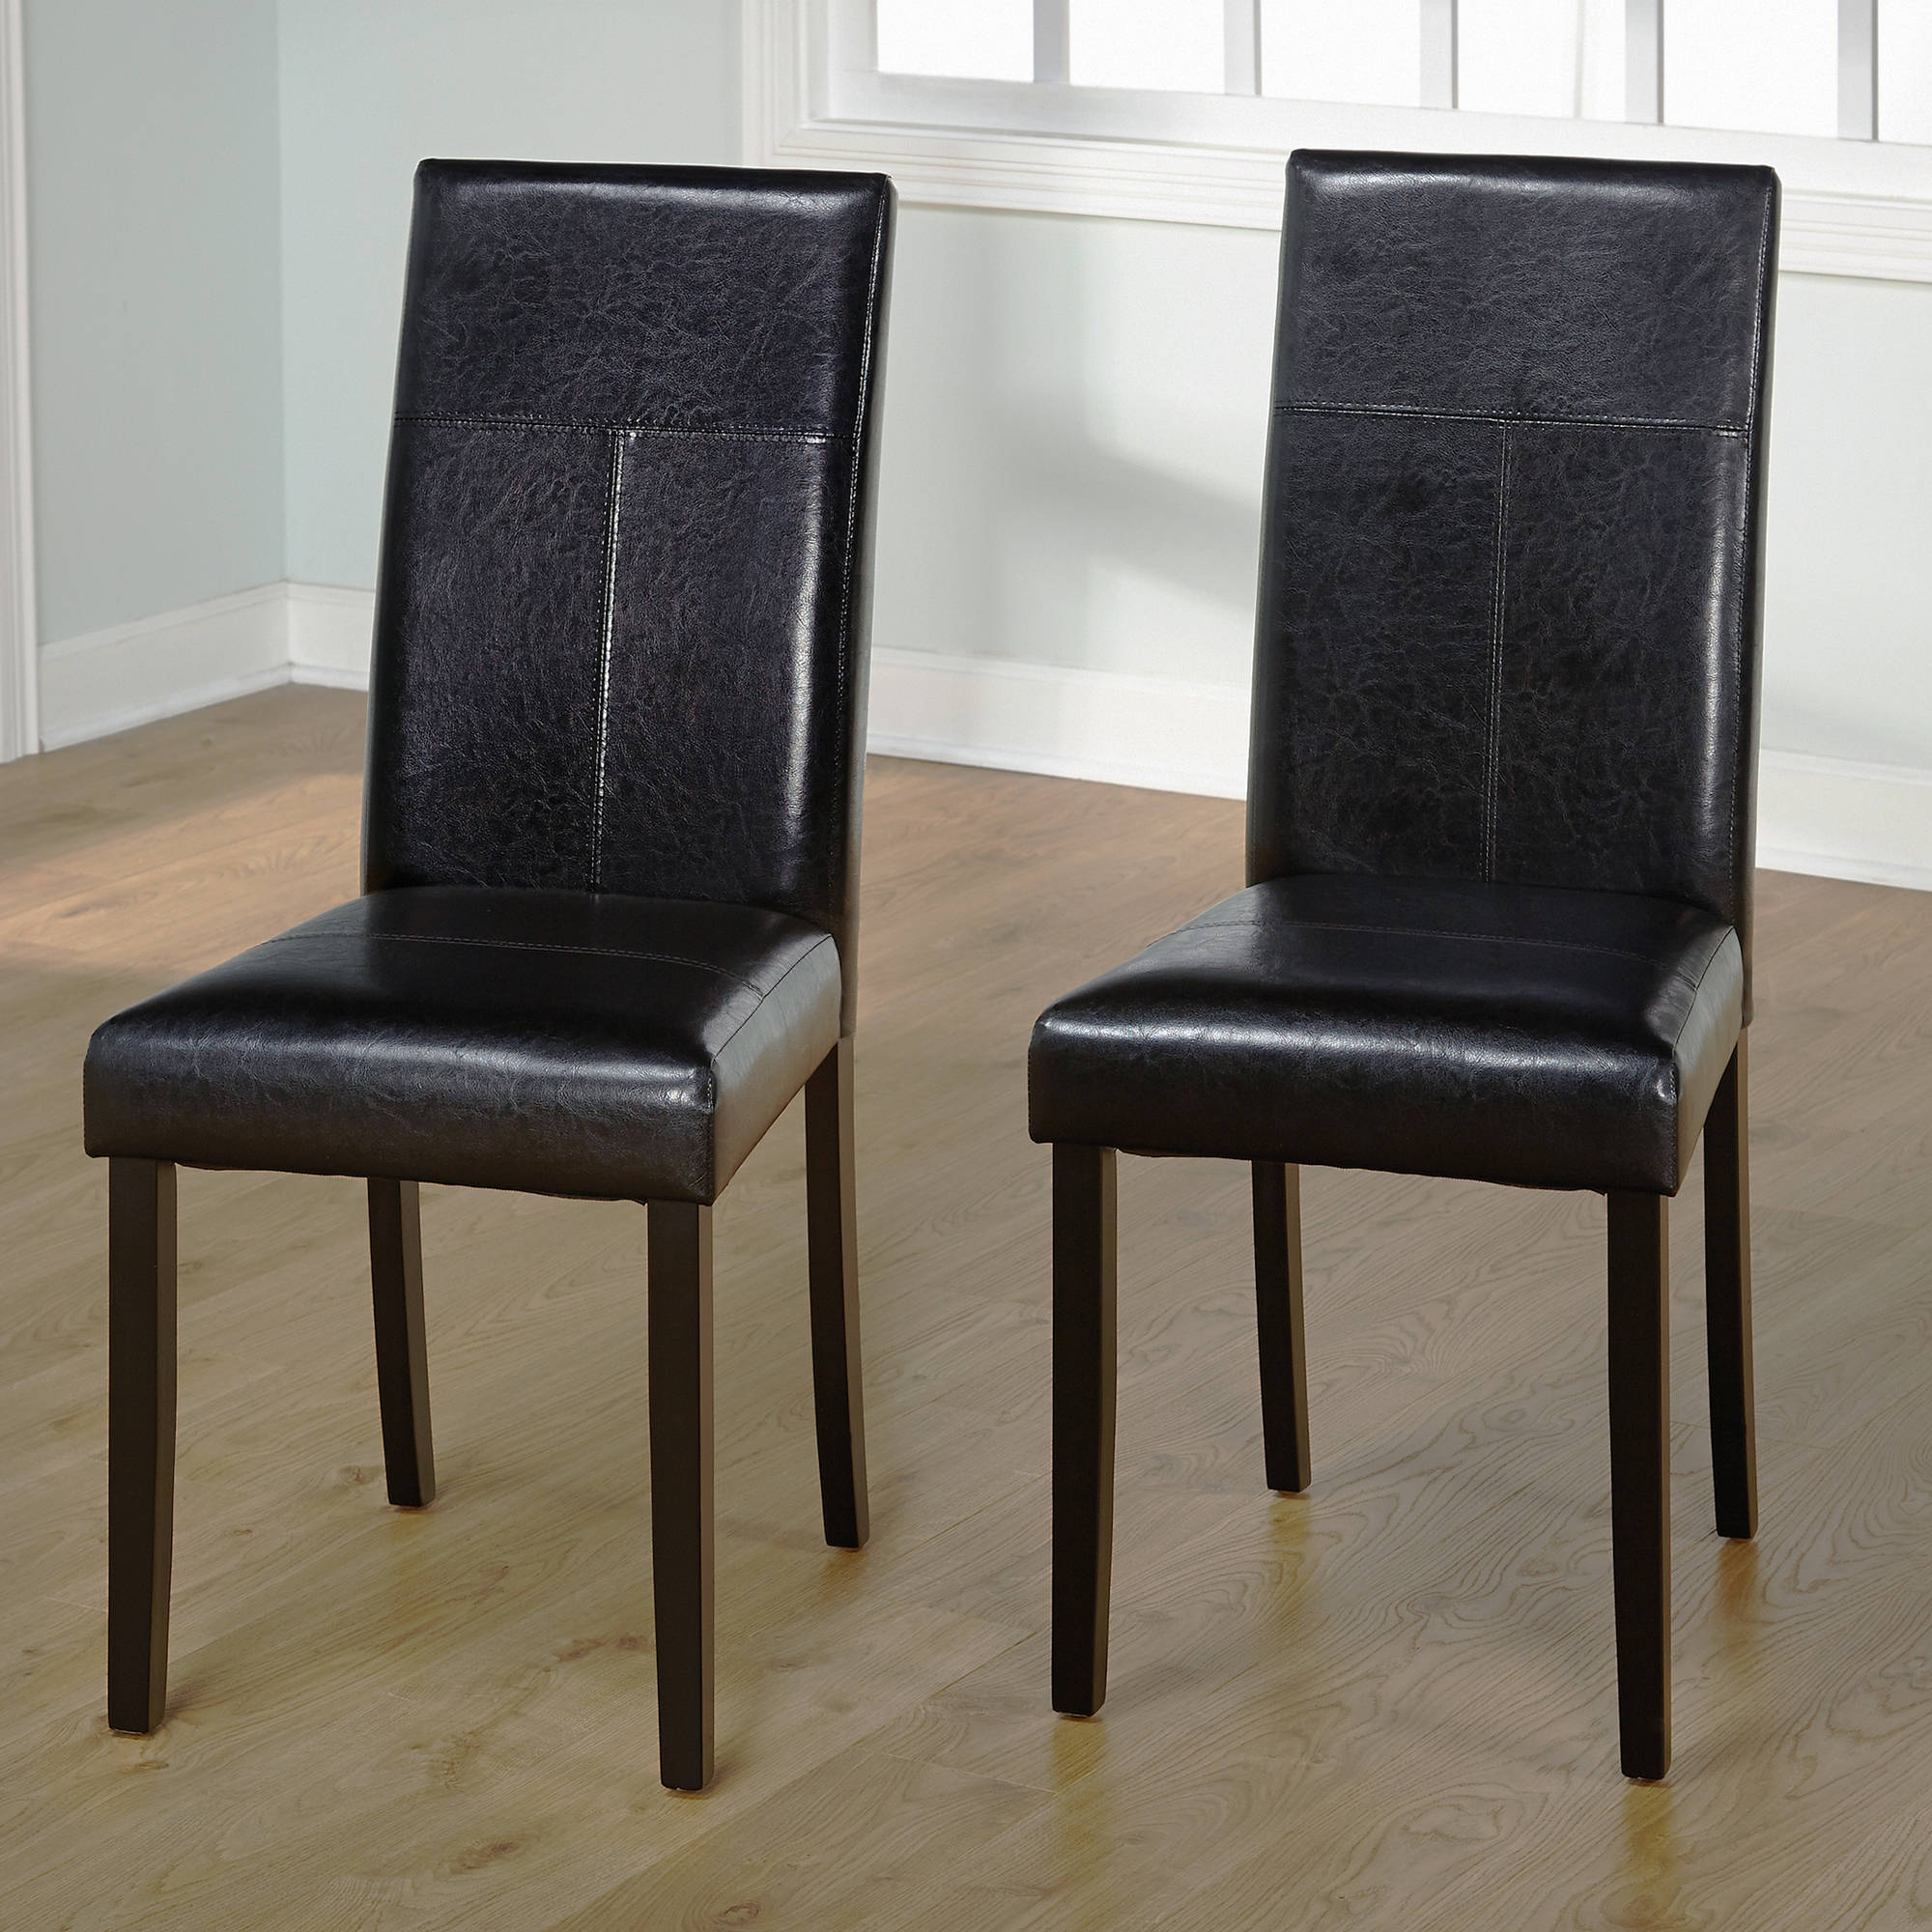 Newark Parson Dining Chair Black Set Of 2 Tms Ebay